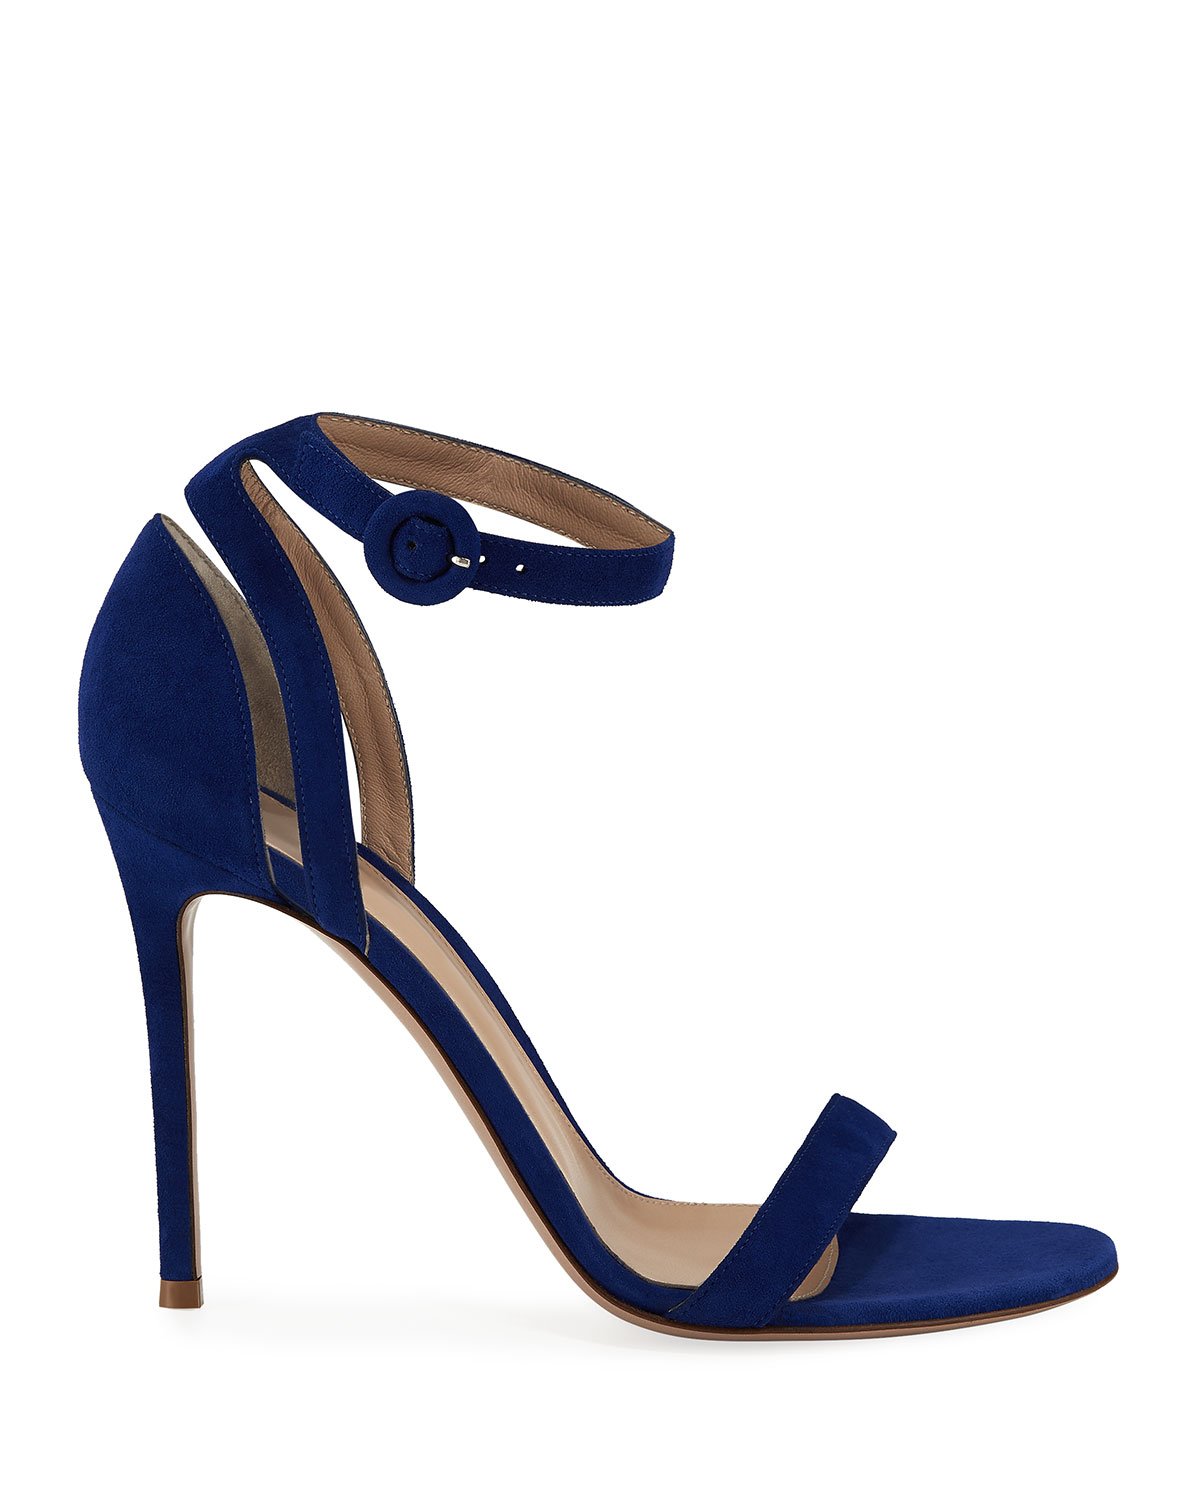 684307732cc Gianvito Rossi 105mm Suede d Orsay Sandals